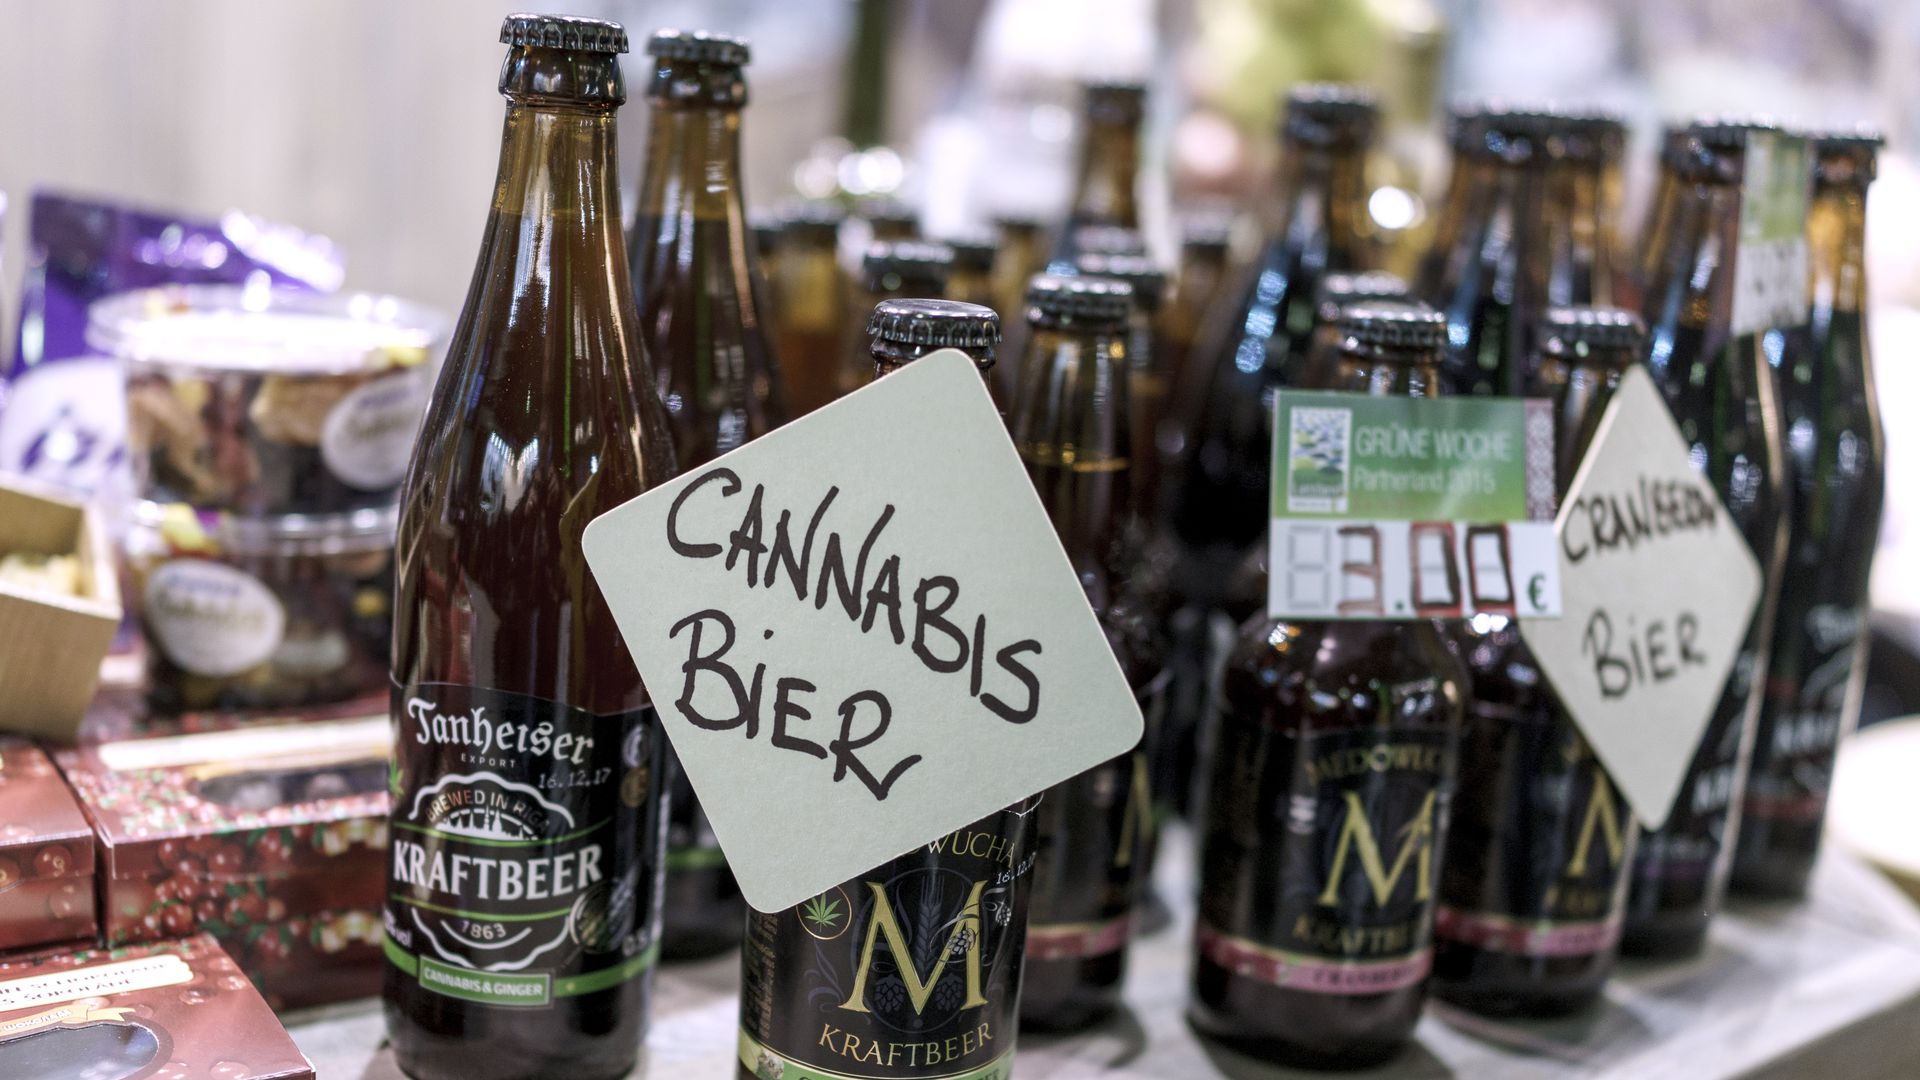 Cannabis beer bottles